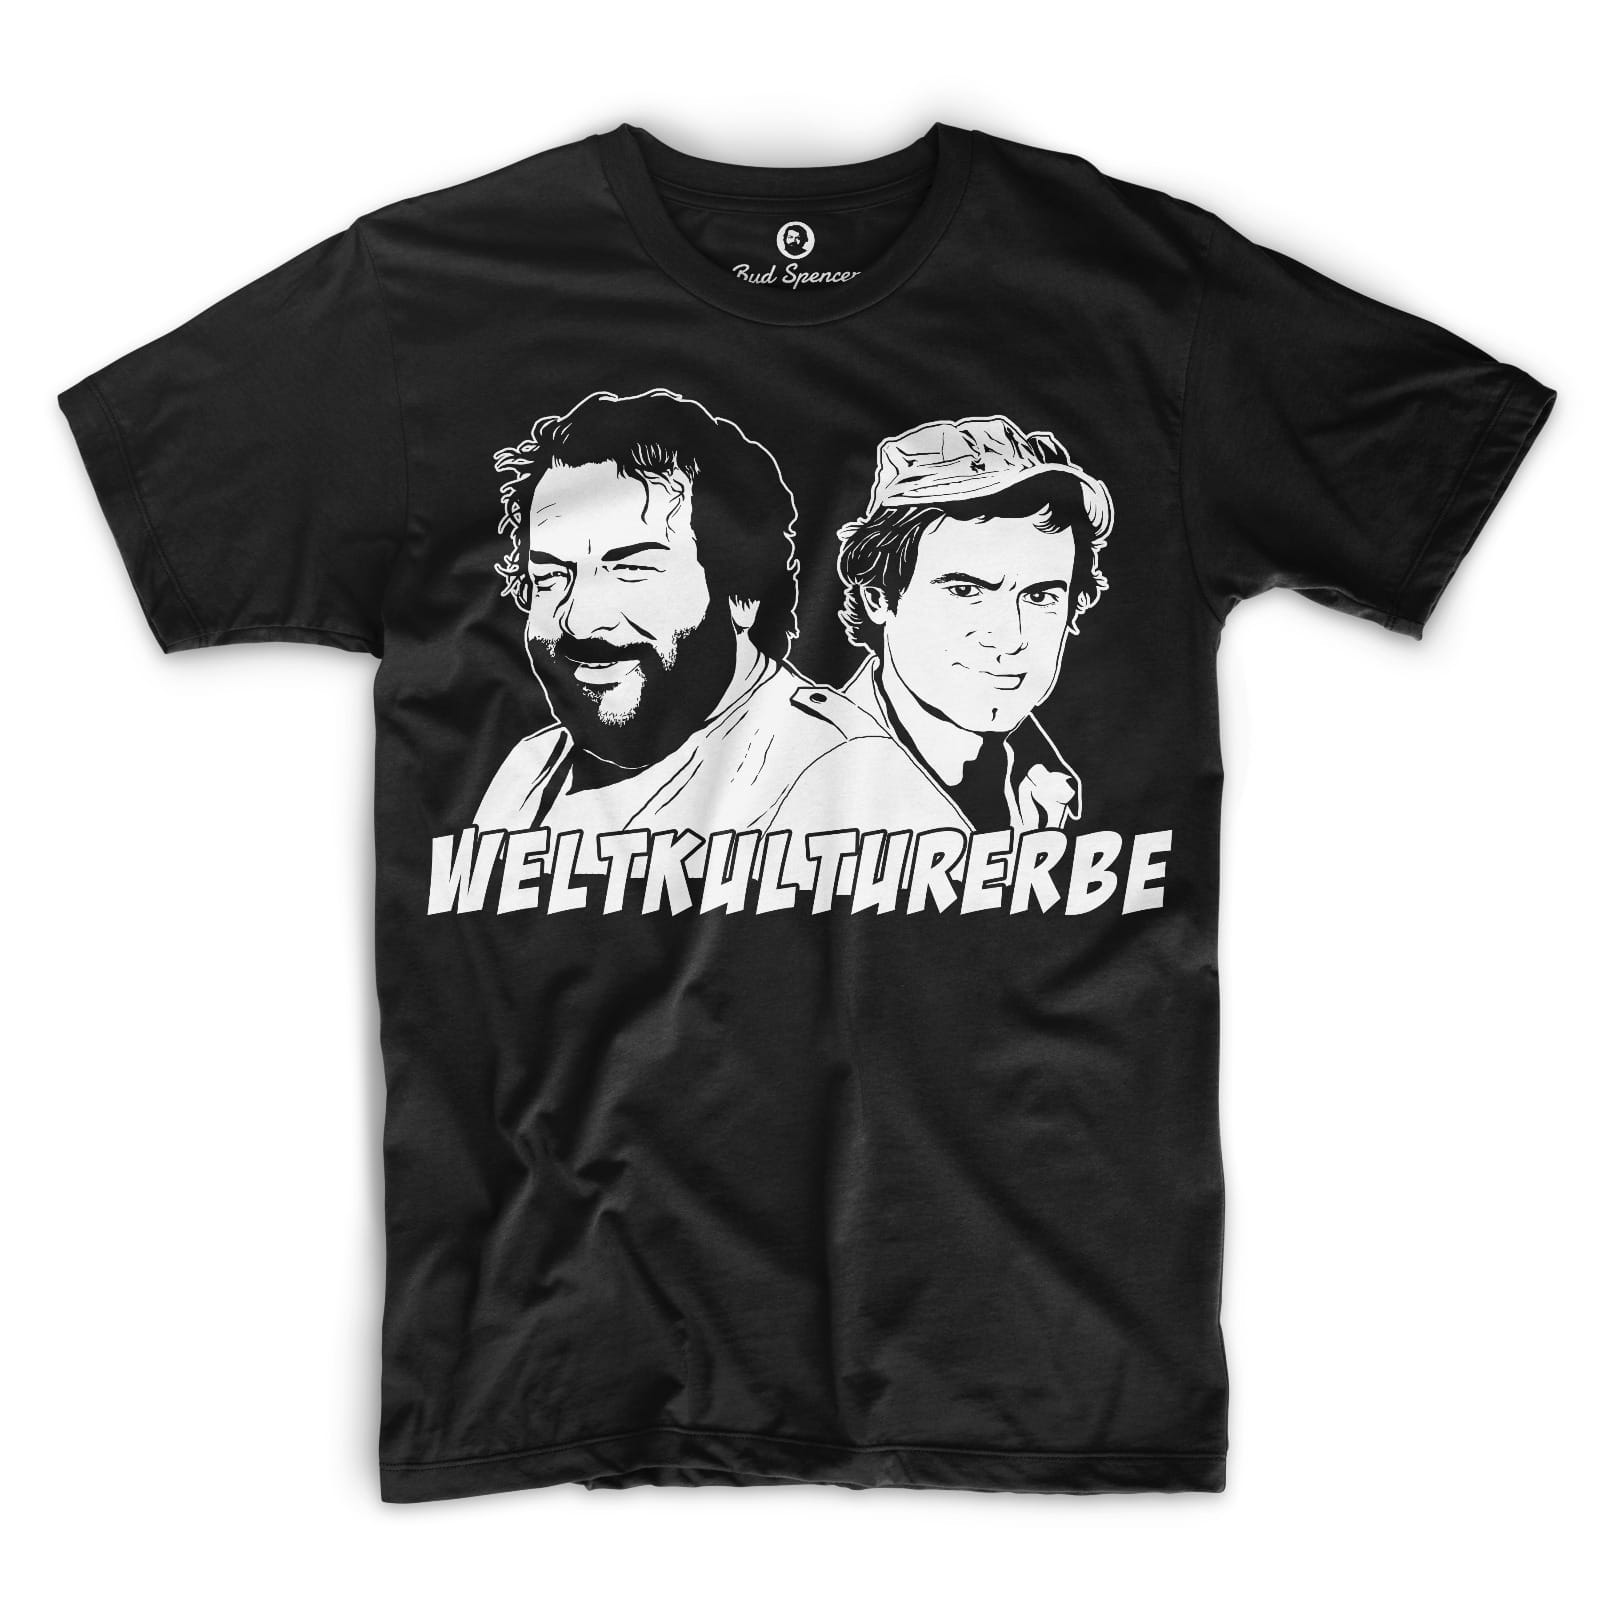 Weltkulturerbe - T-Shirt - Bud Spencer®